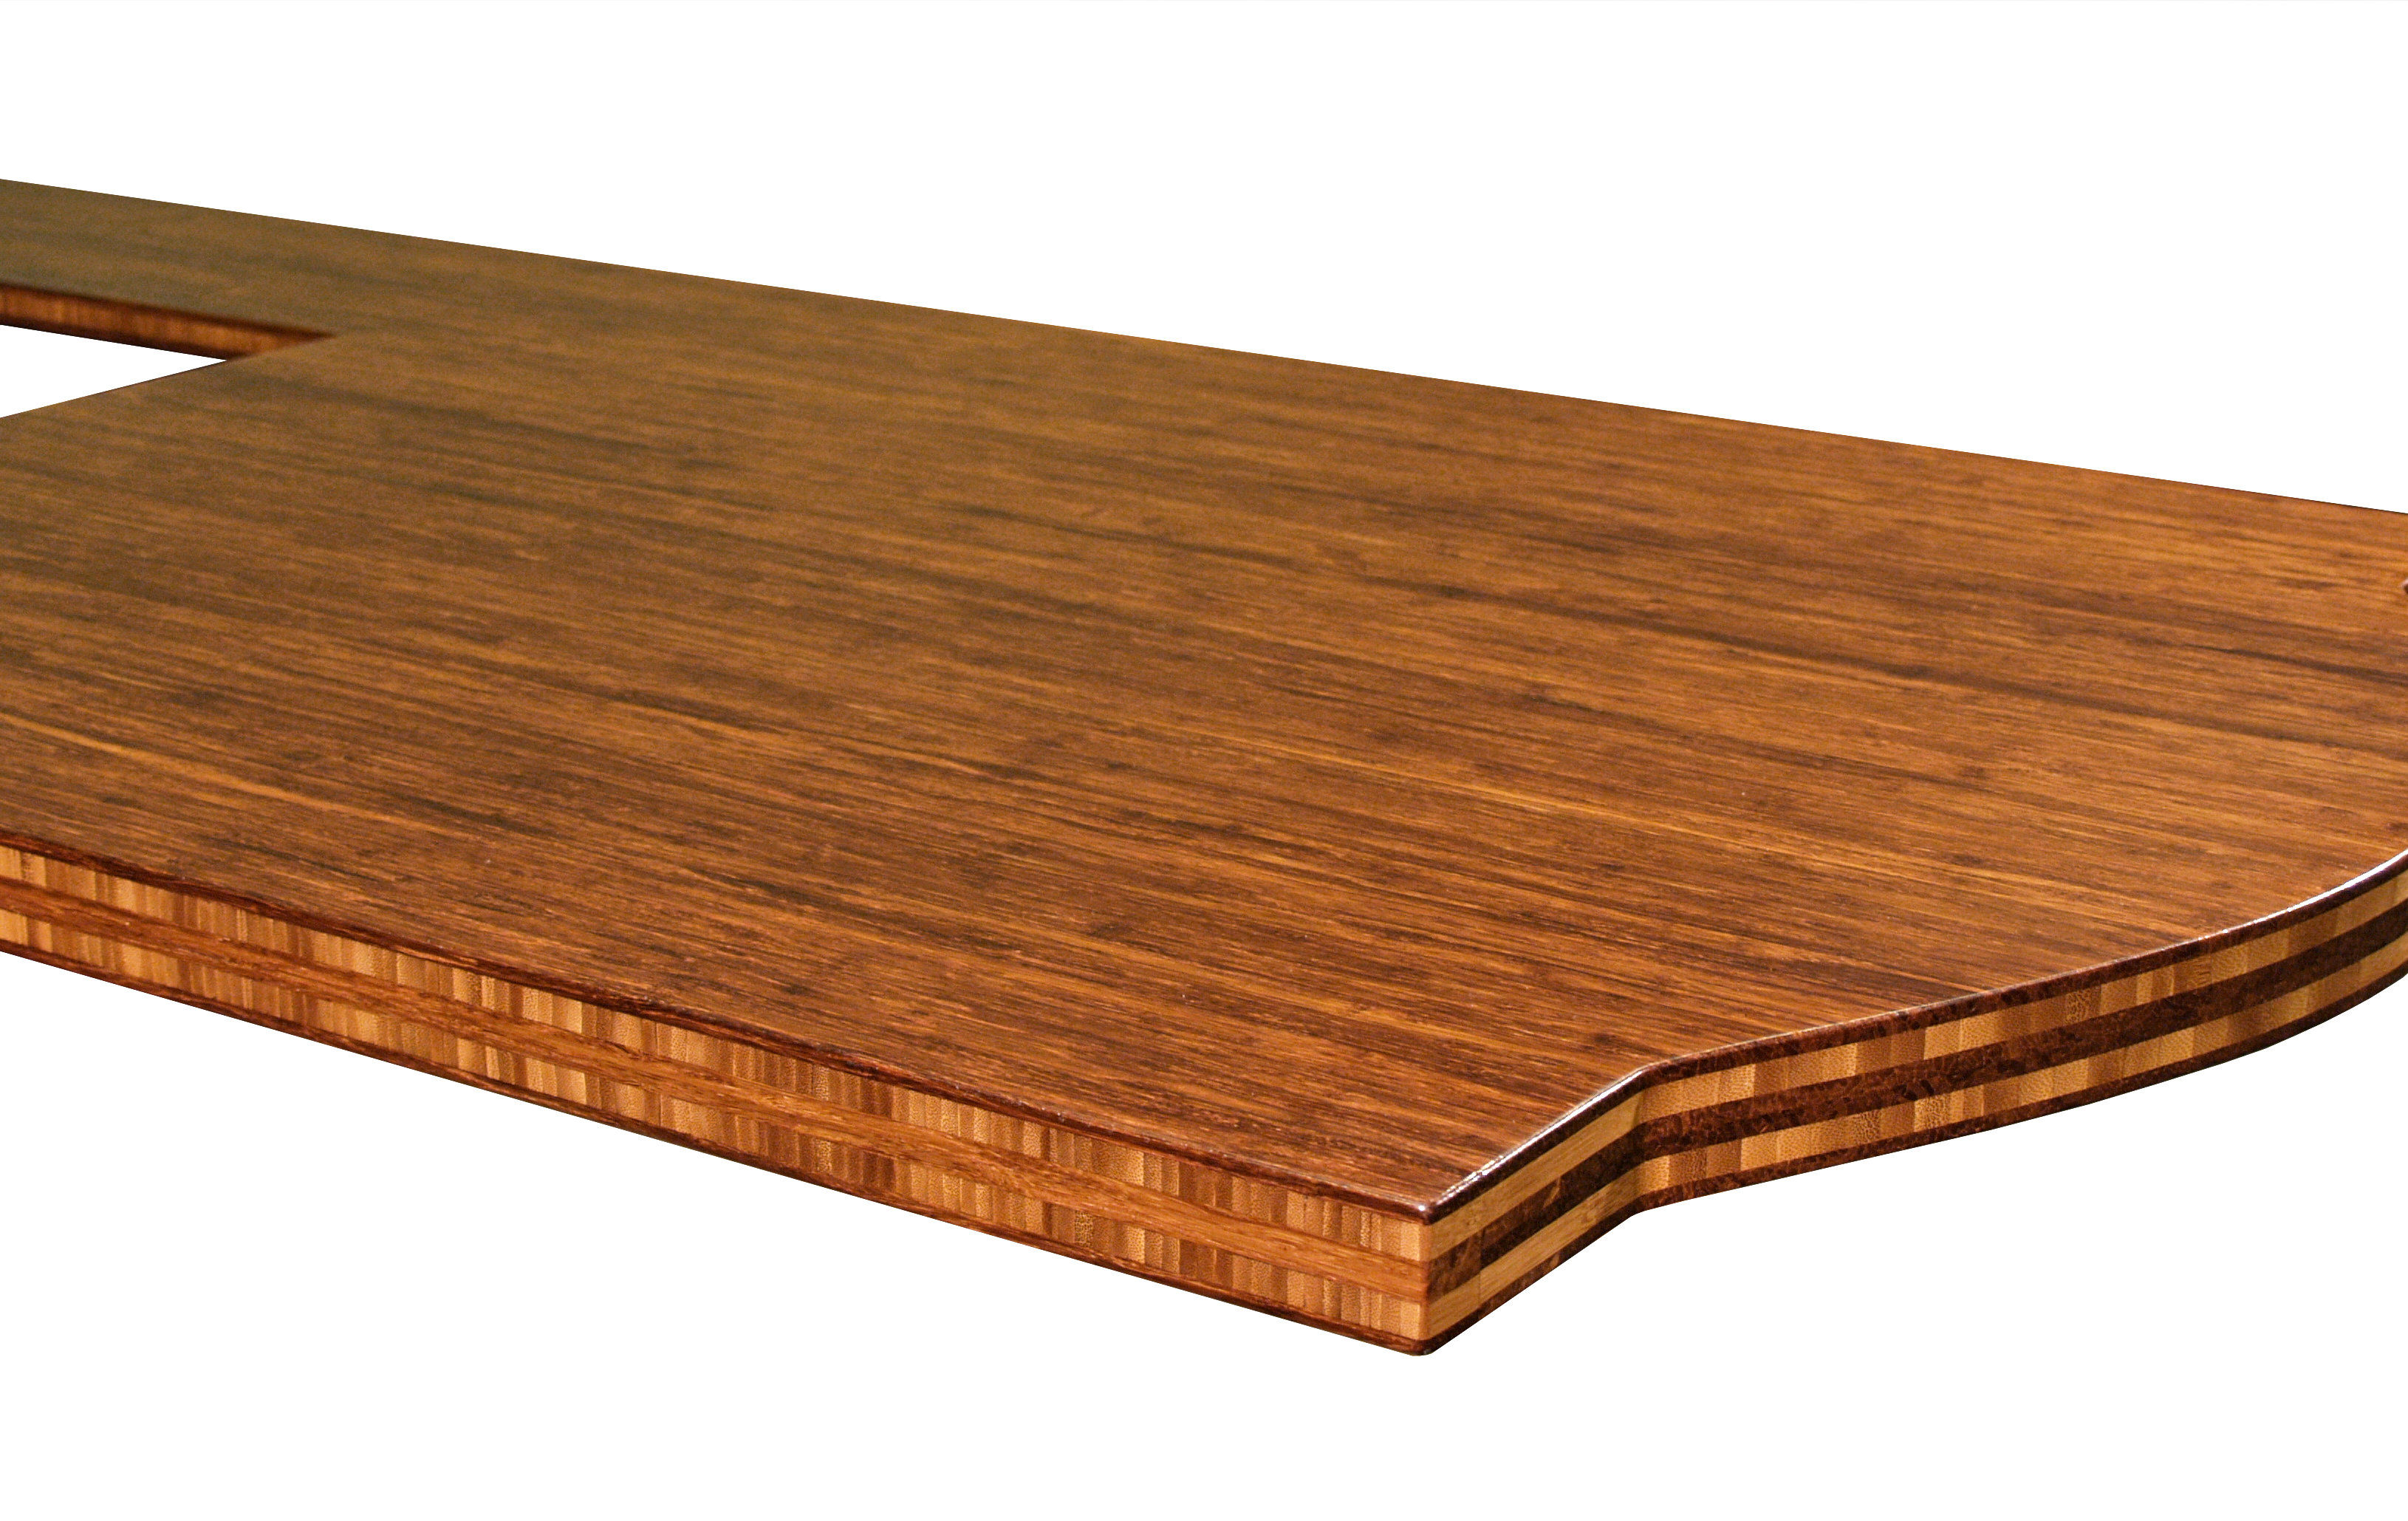 Bamboo Island Countertop Bamboo Wood Countertop Photo Gallery By Devos Custom Woodworking